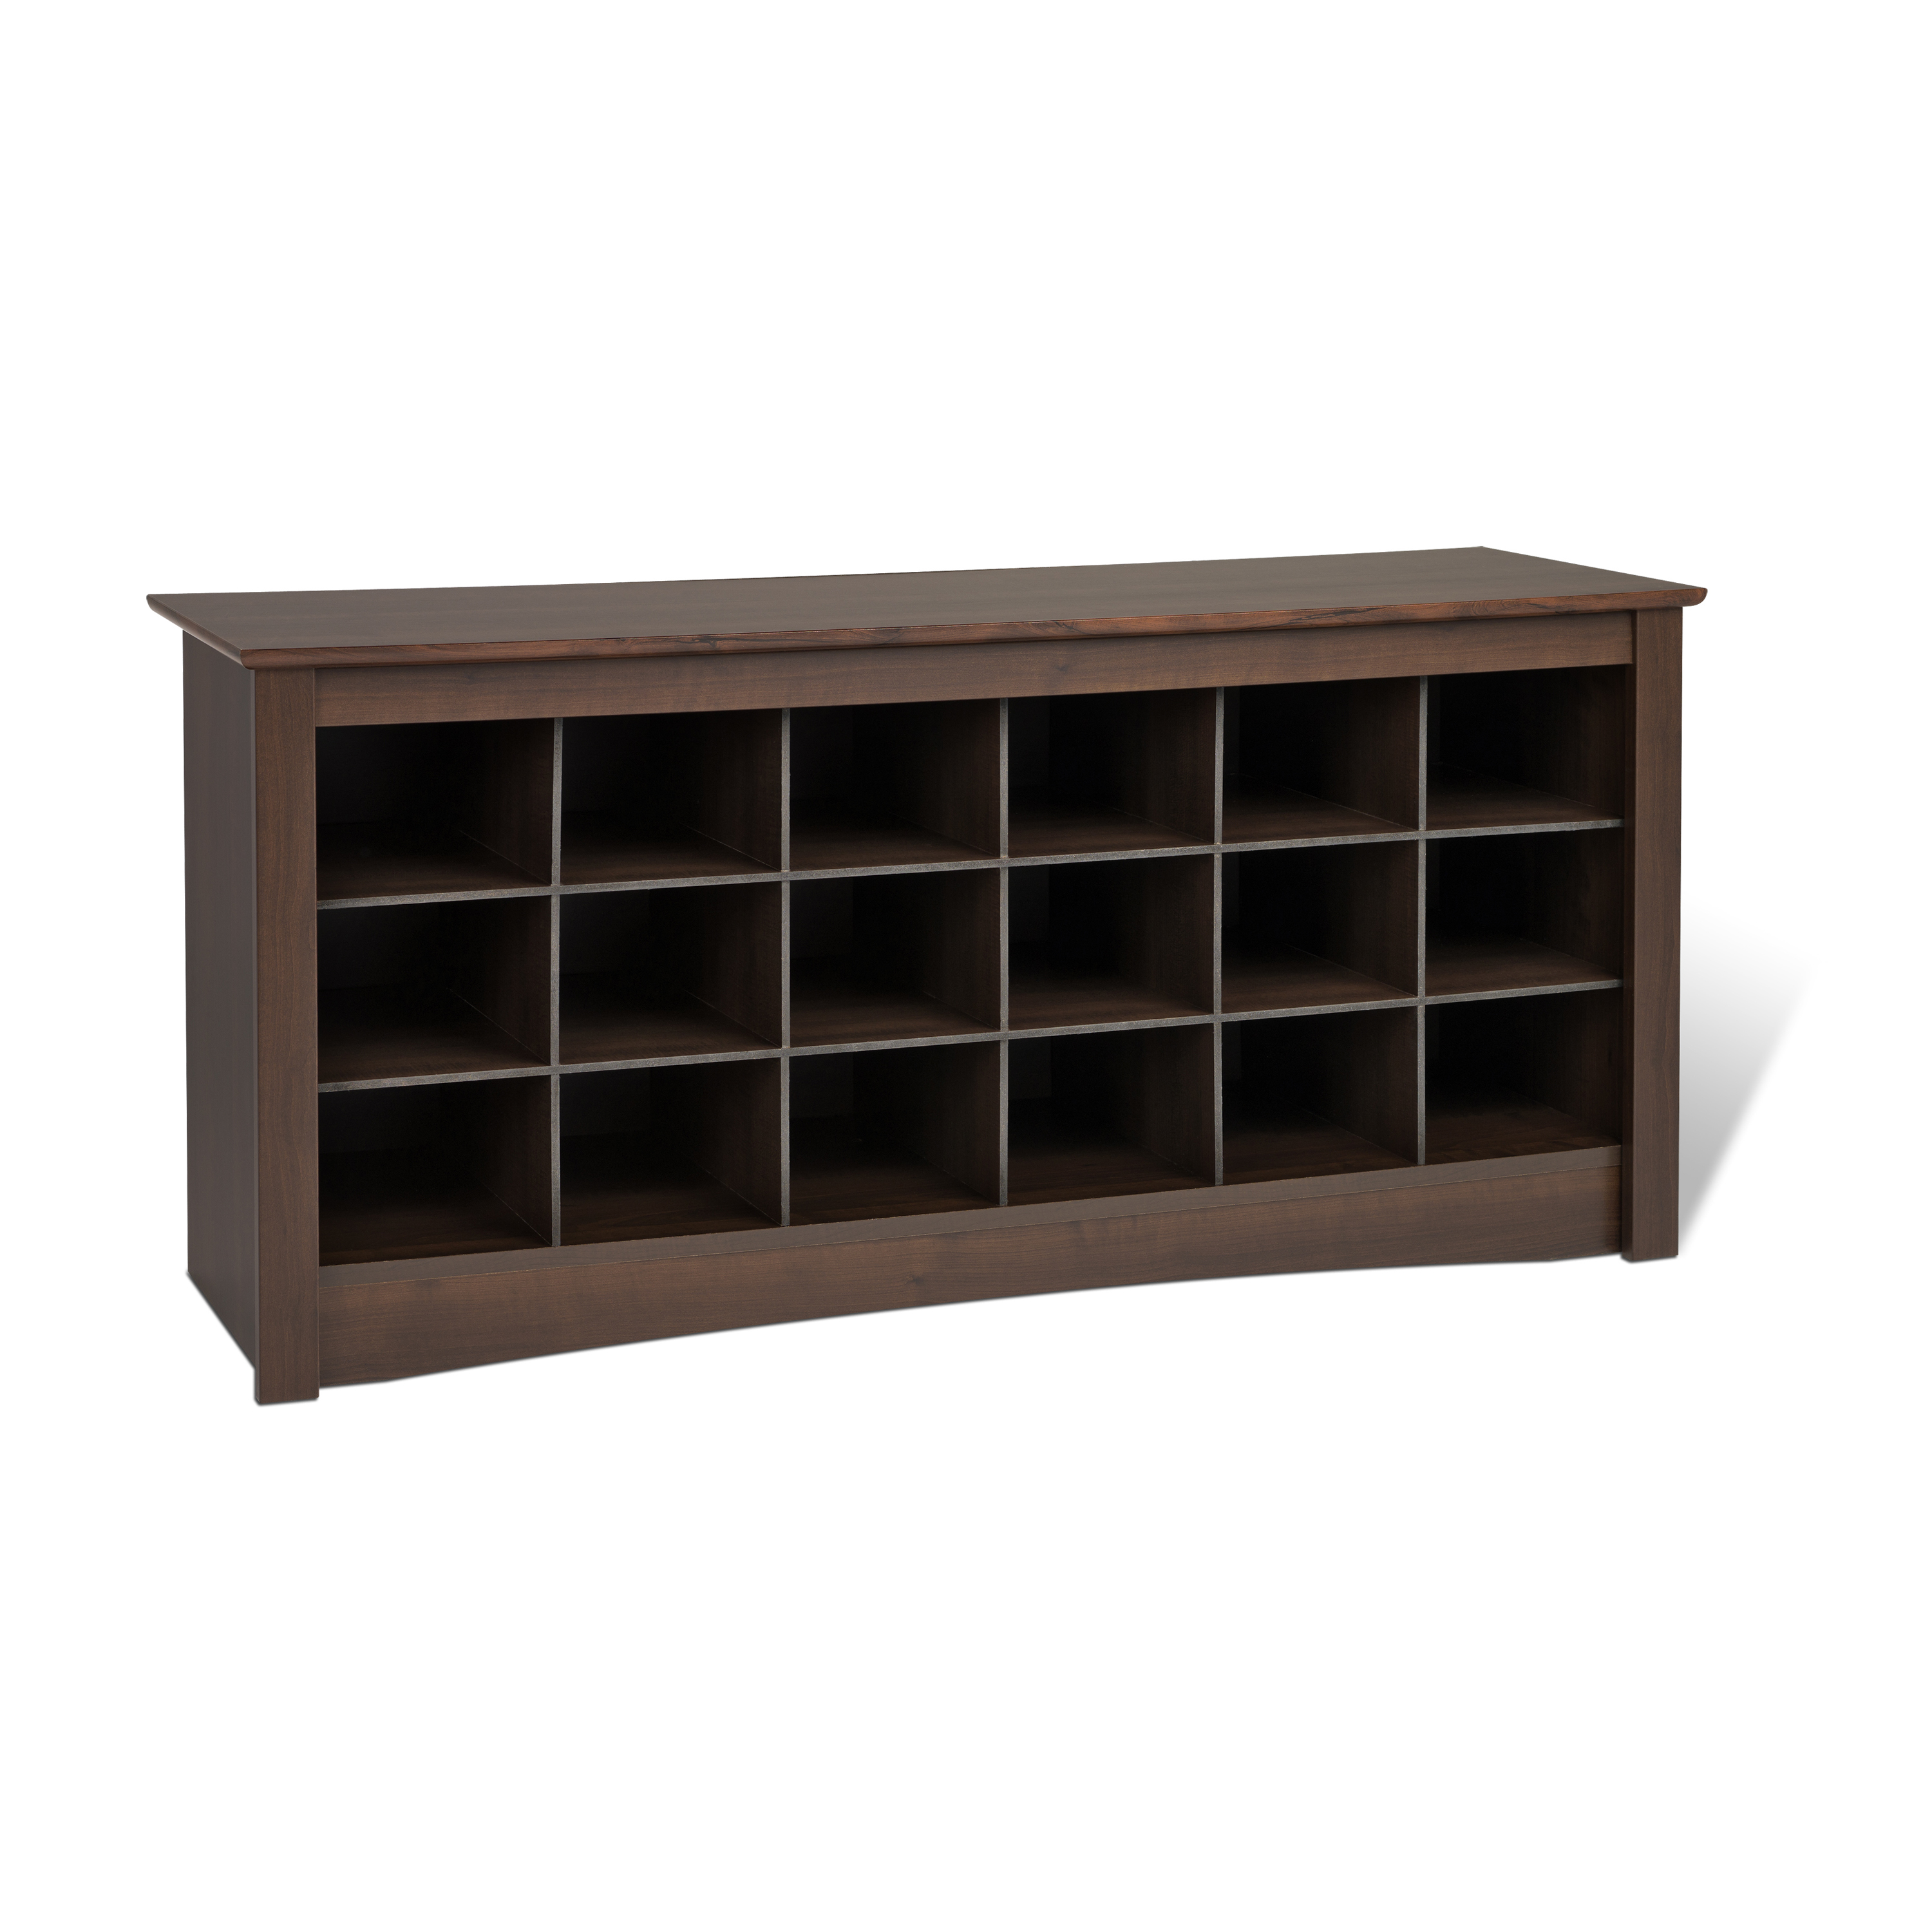 Prepac 18 Pair Entryway Shoe Storage Cubby Bench, Multiple Finishes